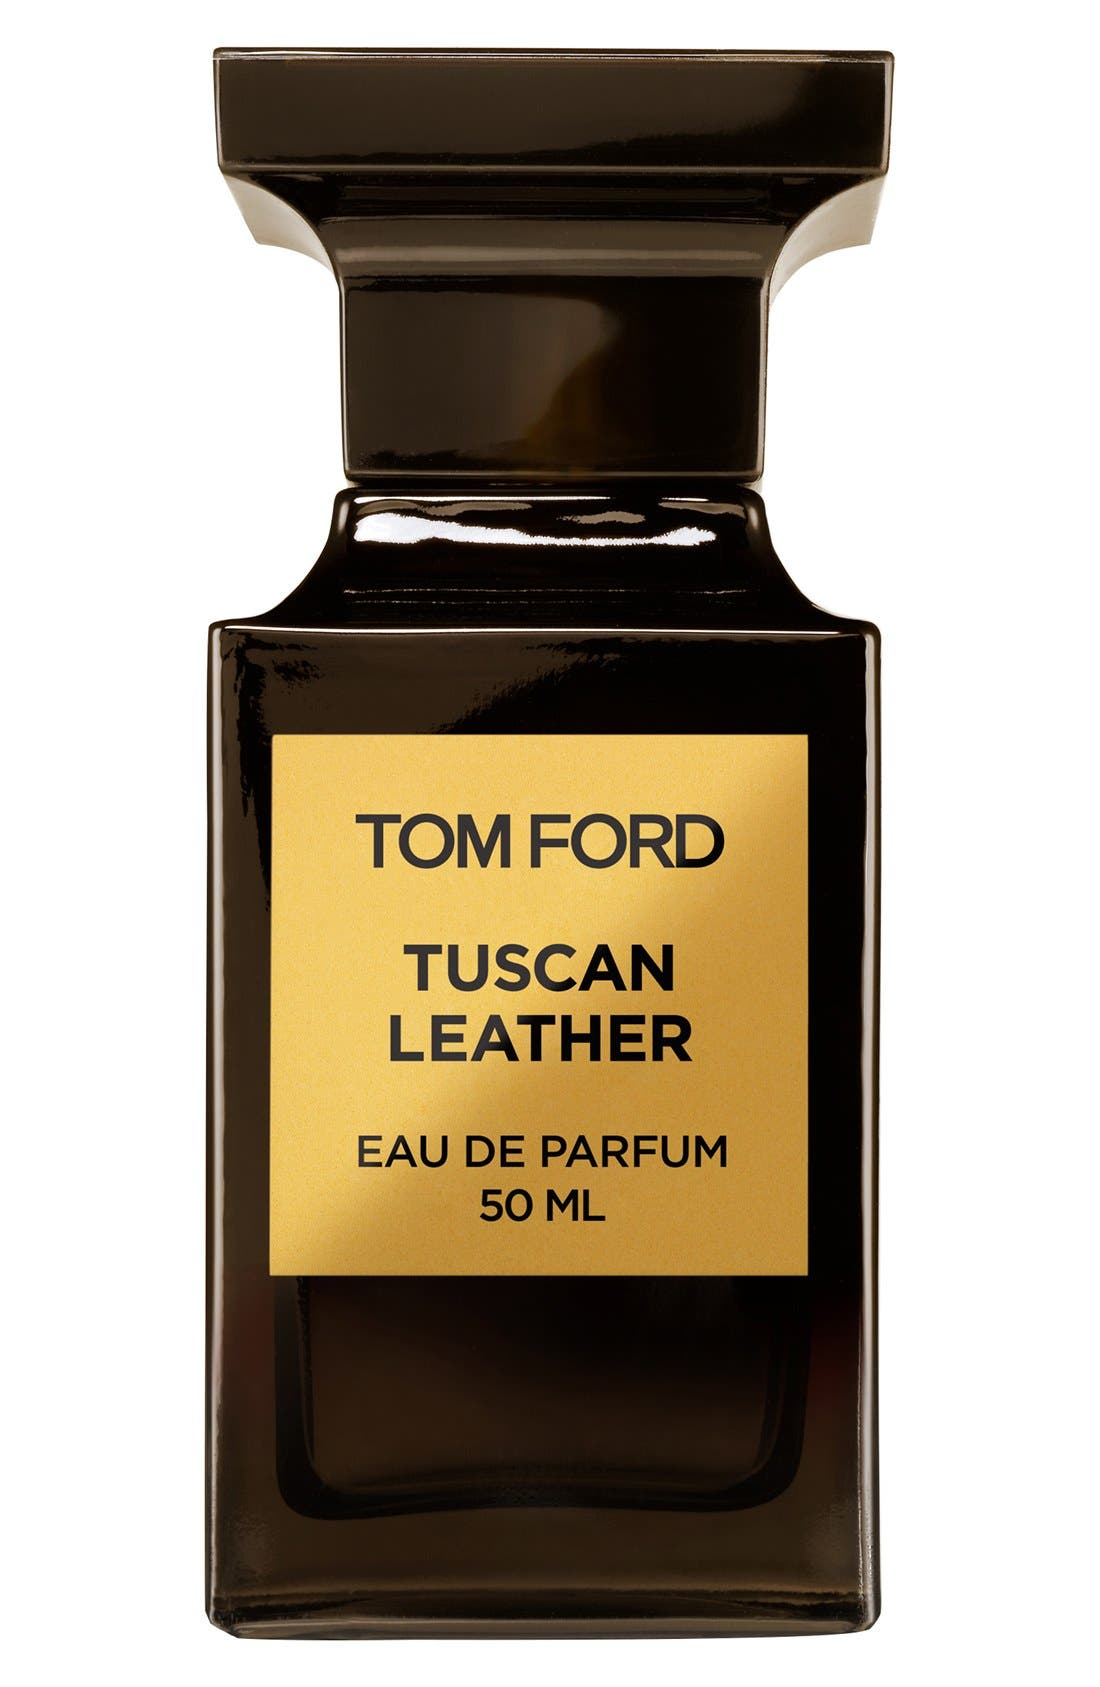 Tom Ford Private Blend Tuscan Leather Eau de Parfum